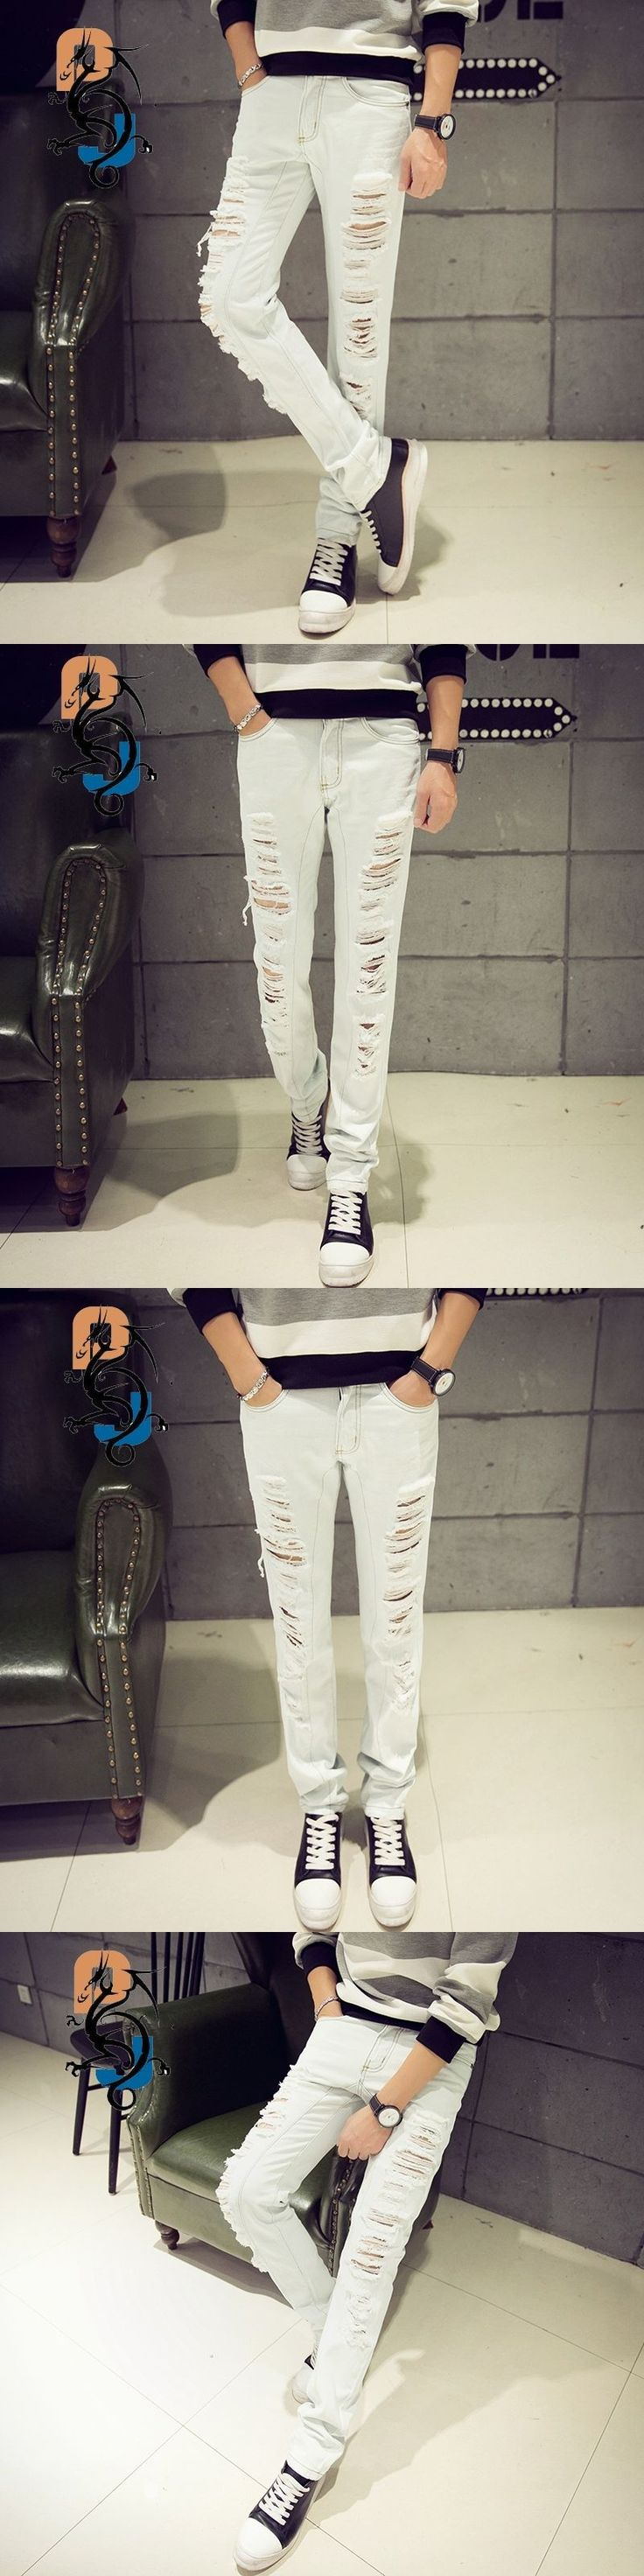 2016 Spring New Arrival White Ripped Slim Fit Jeans/Punk Style Biker Jeans For Men/High Quality Denim Joggers Large Plus Size 42